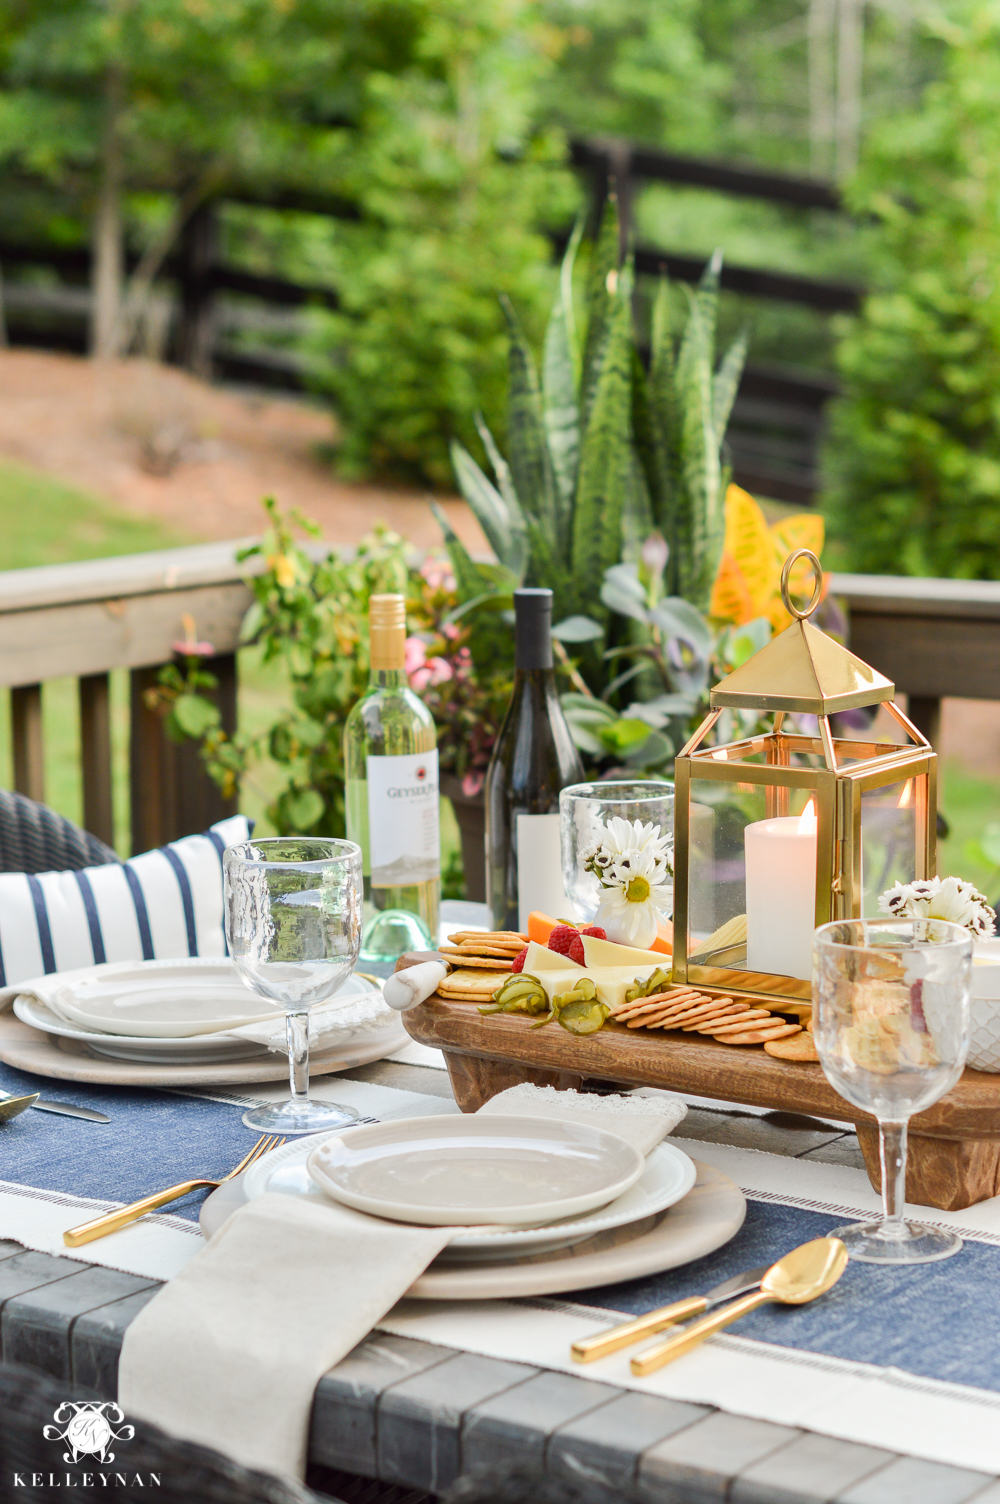 Outdoor Entertaining and Table Ideas with Cheese board appetizer centerpieces- blue and white outdoor place setting